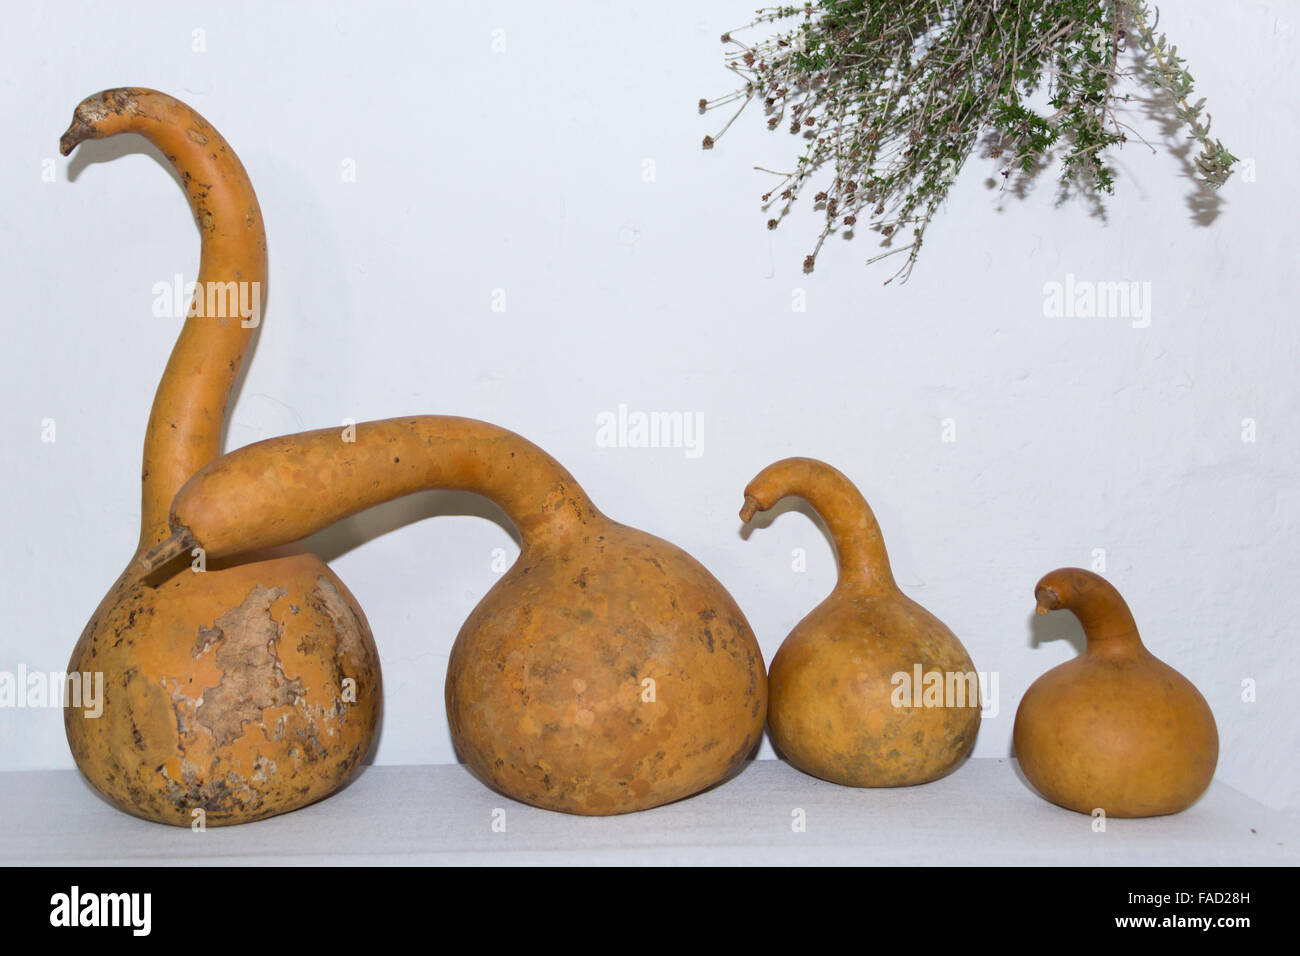 Oddly shaped pumpkins. - Stock Image